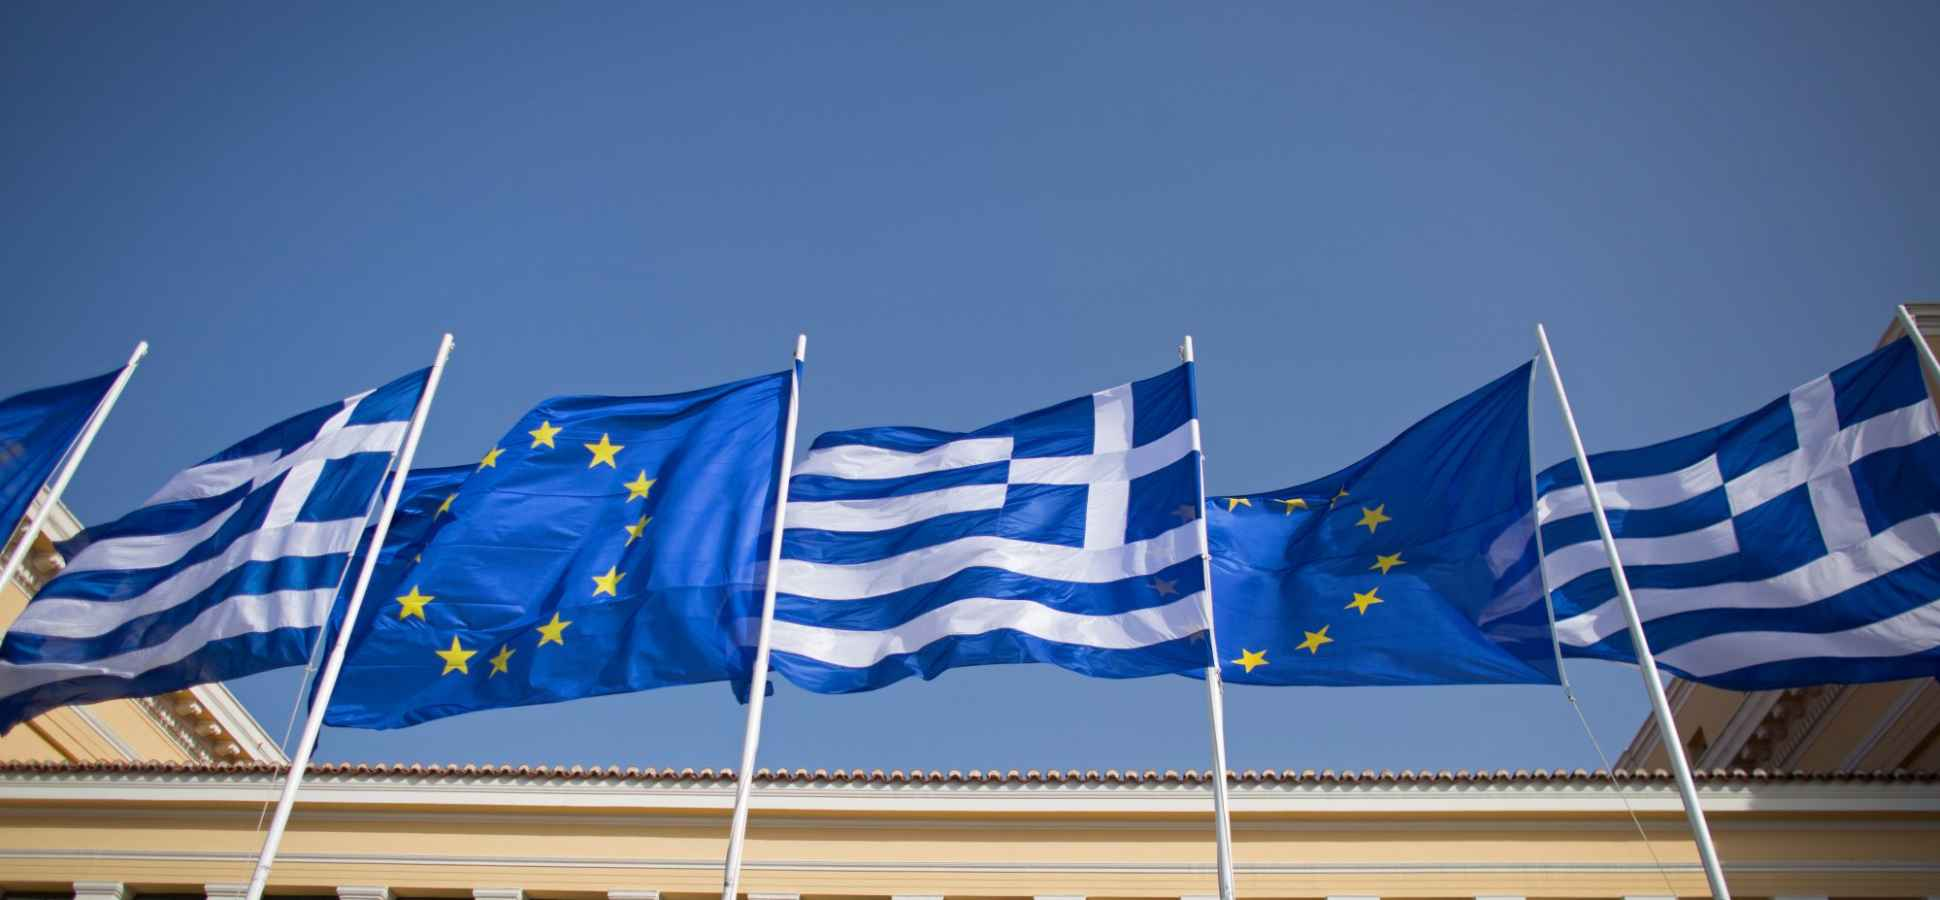 Why Some Businesses See a Silver Lining in Greek Debt Crisis